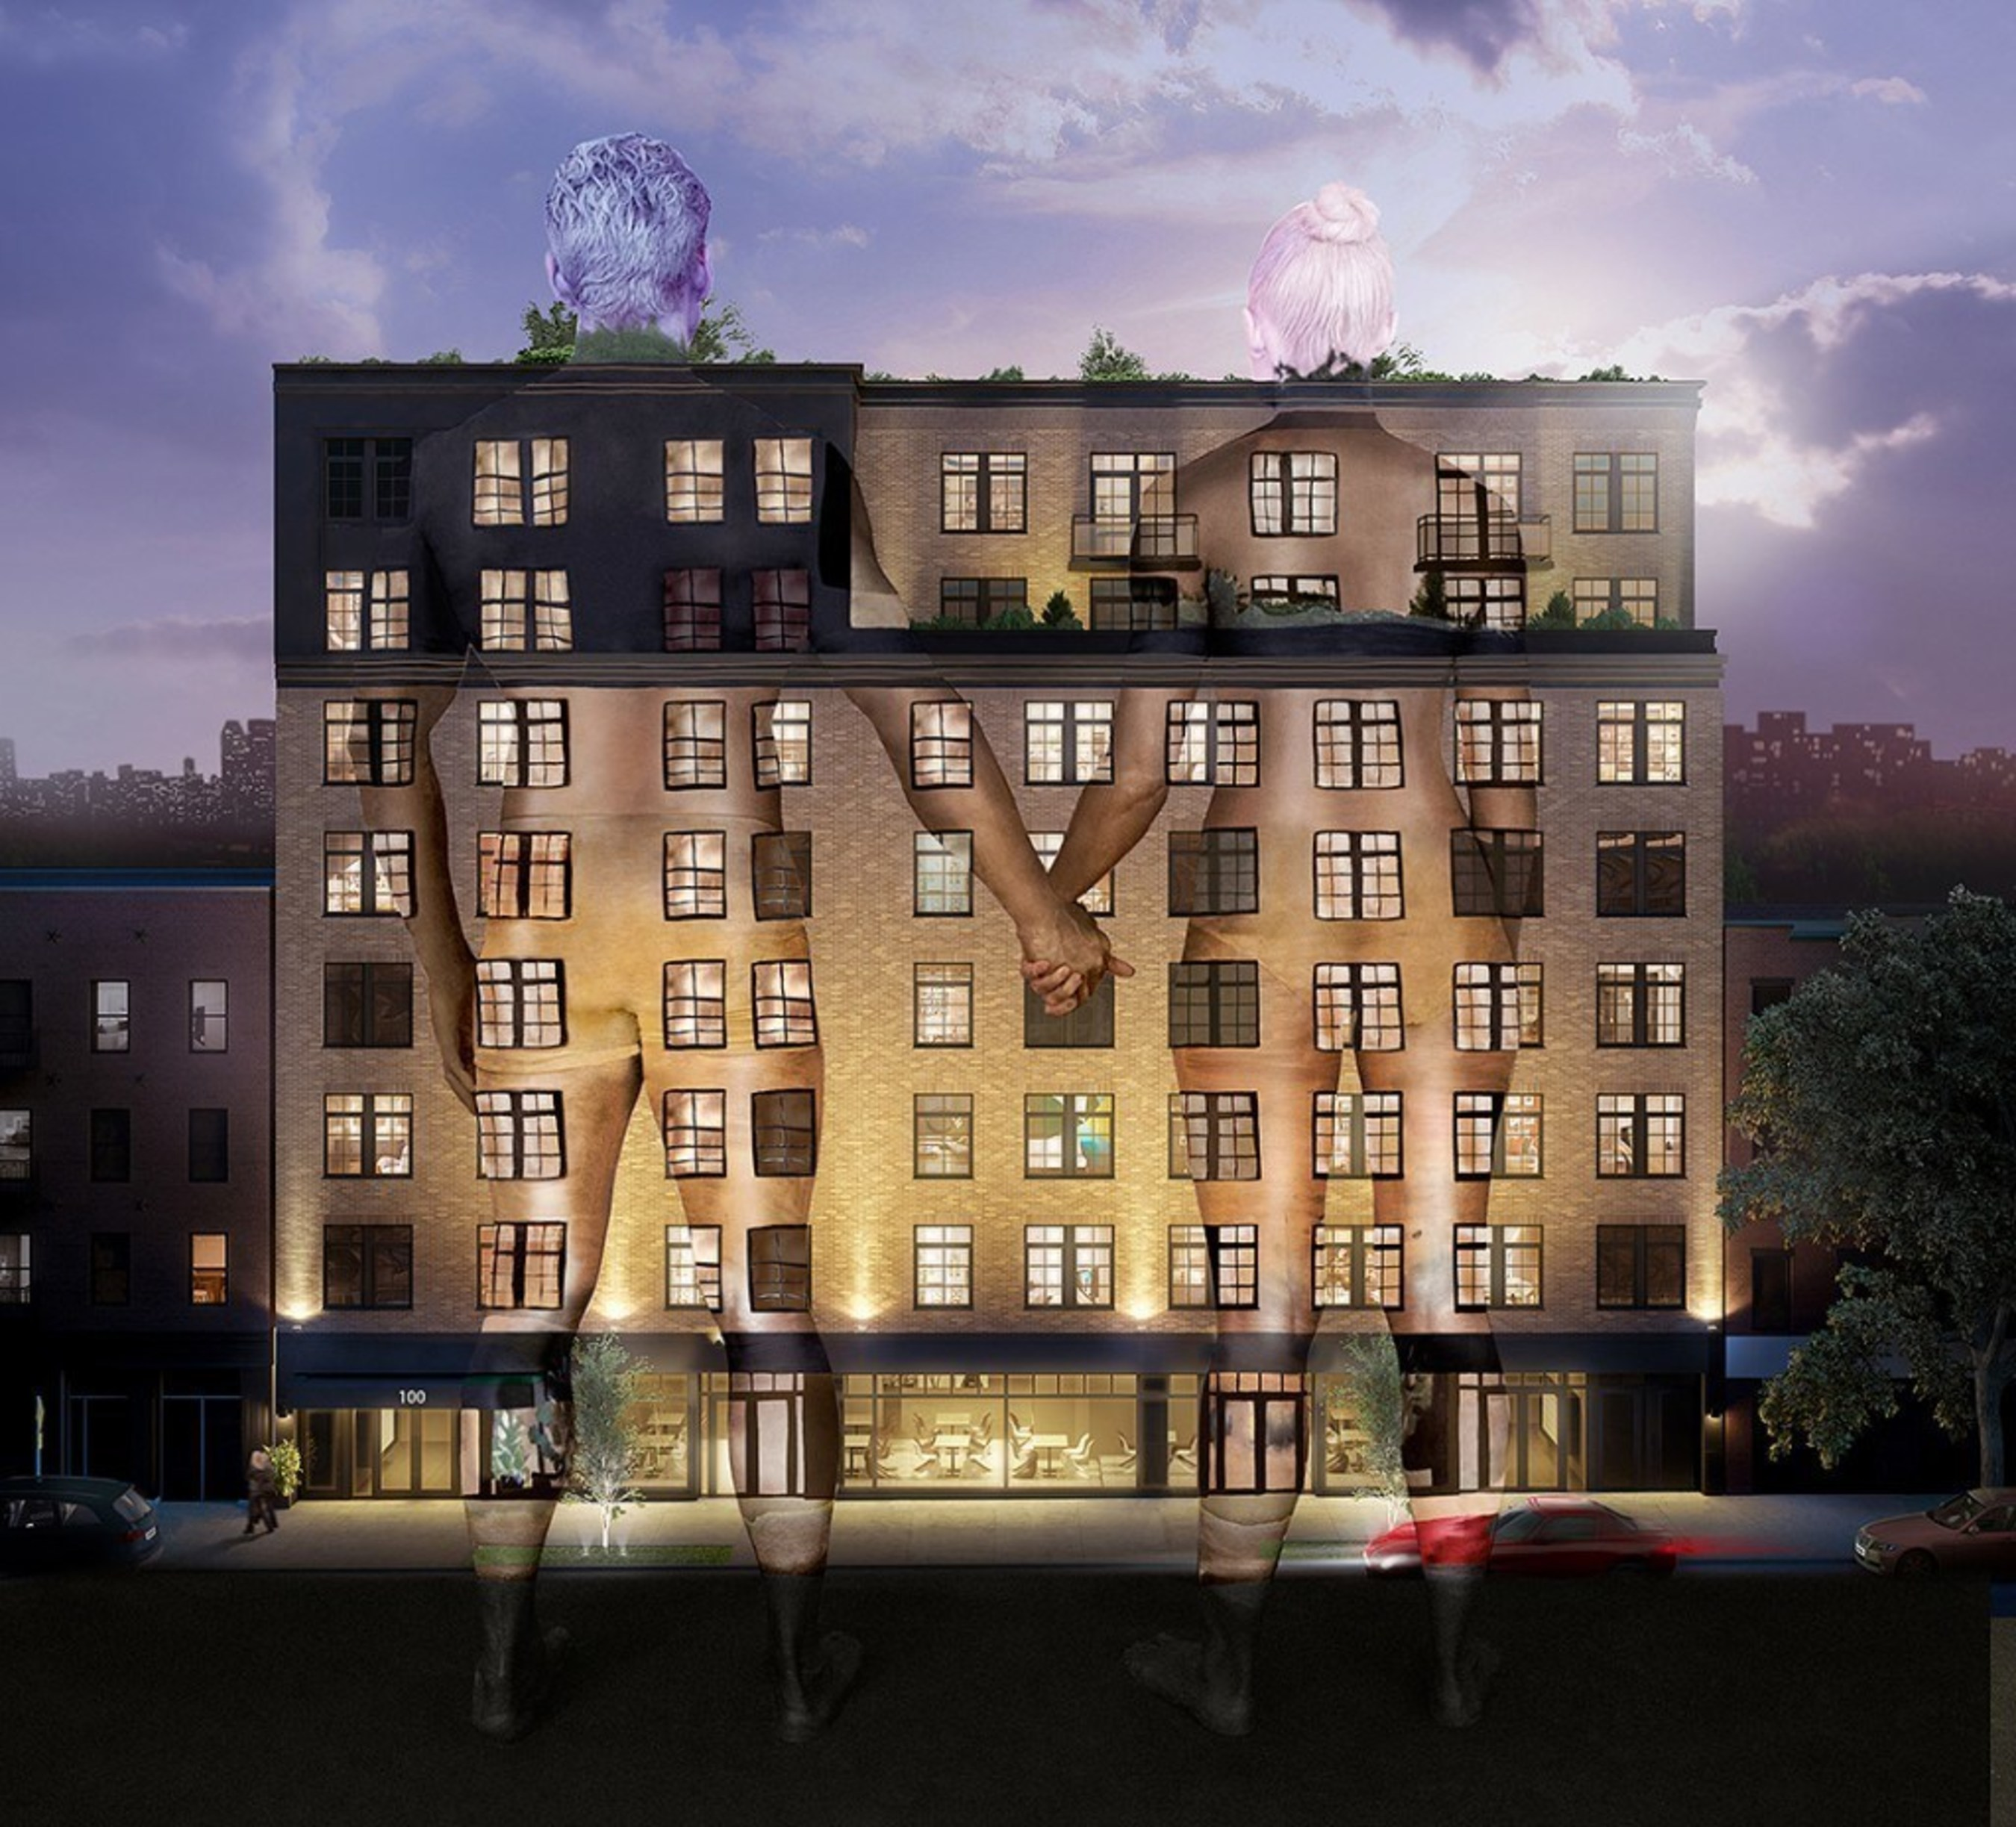 Ryan Serhant Begins Exclusive Sales for East Village Luxury Condominium, 100 Avenue A on March 2. The Serhant Team of Nest Seekers International Have Set Price Per Square Foot Record in Manhattan's East Village With Sale of 7C. www.ryanserhant.com